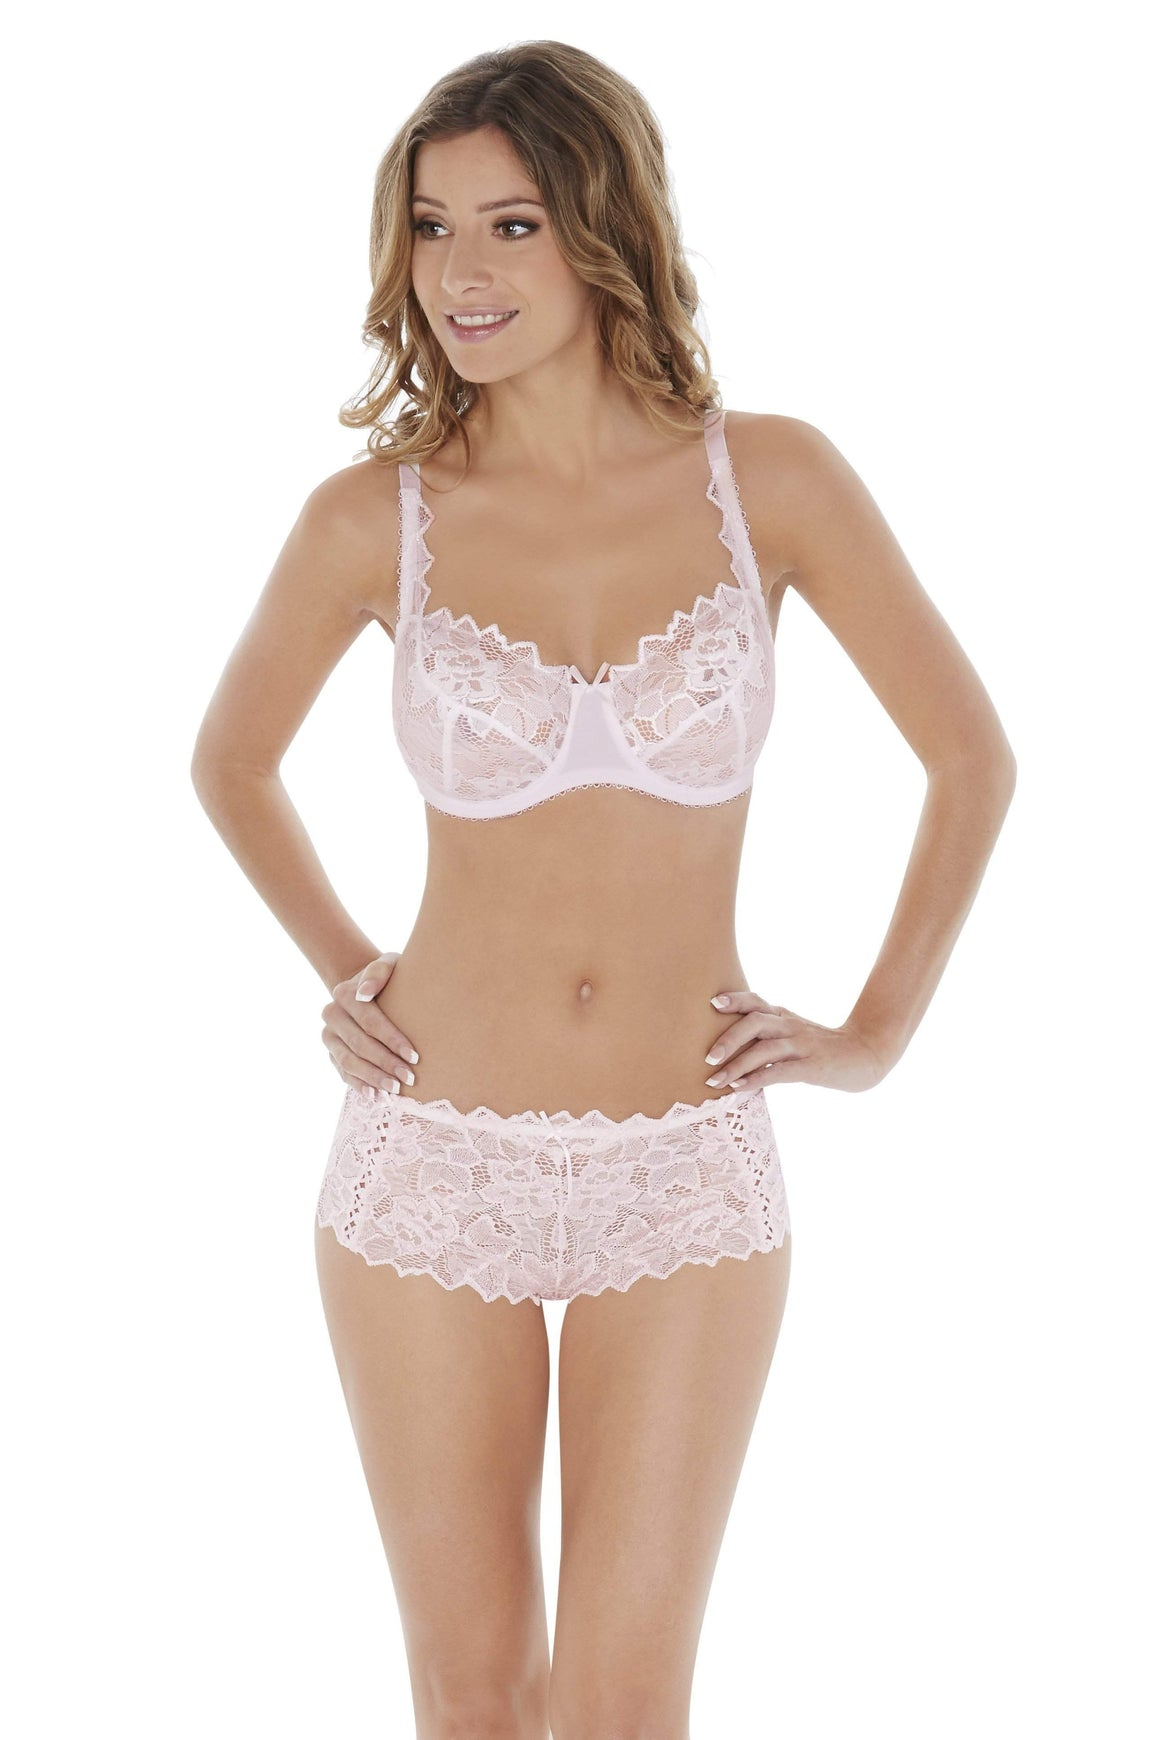 Fiore Shorts in Soft Pink by Lepel - Charnos / Lepel - Katys Boutique Lingerie USA